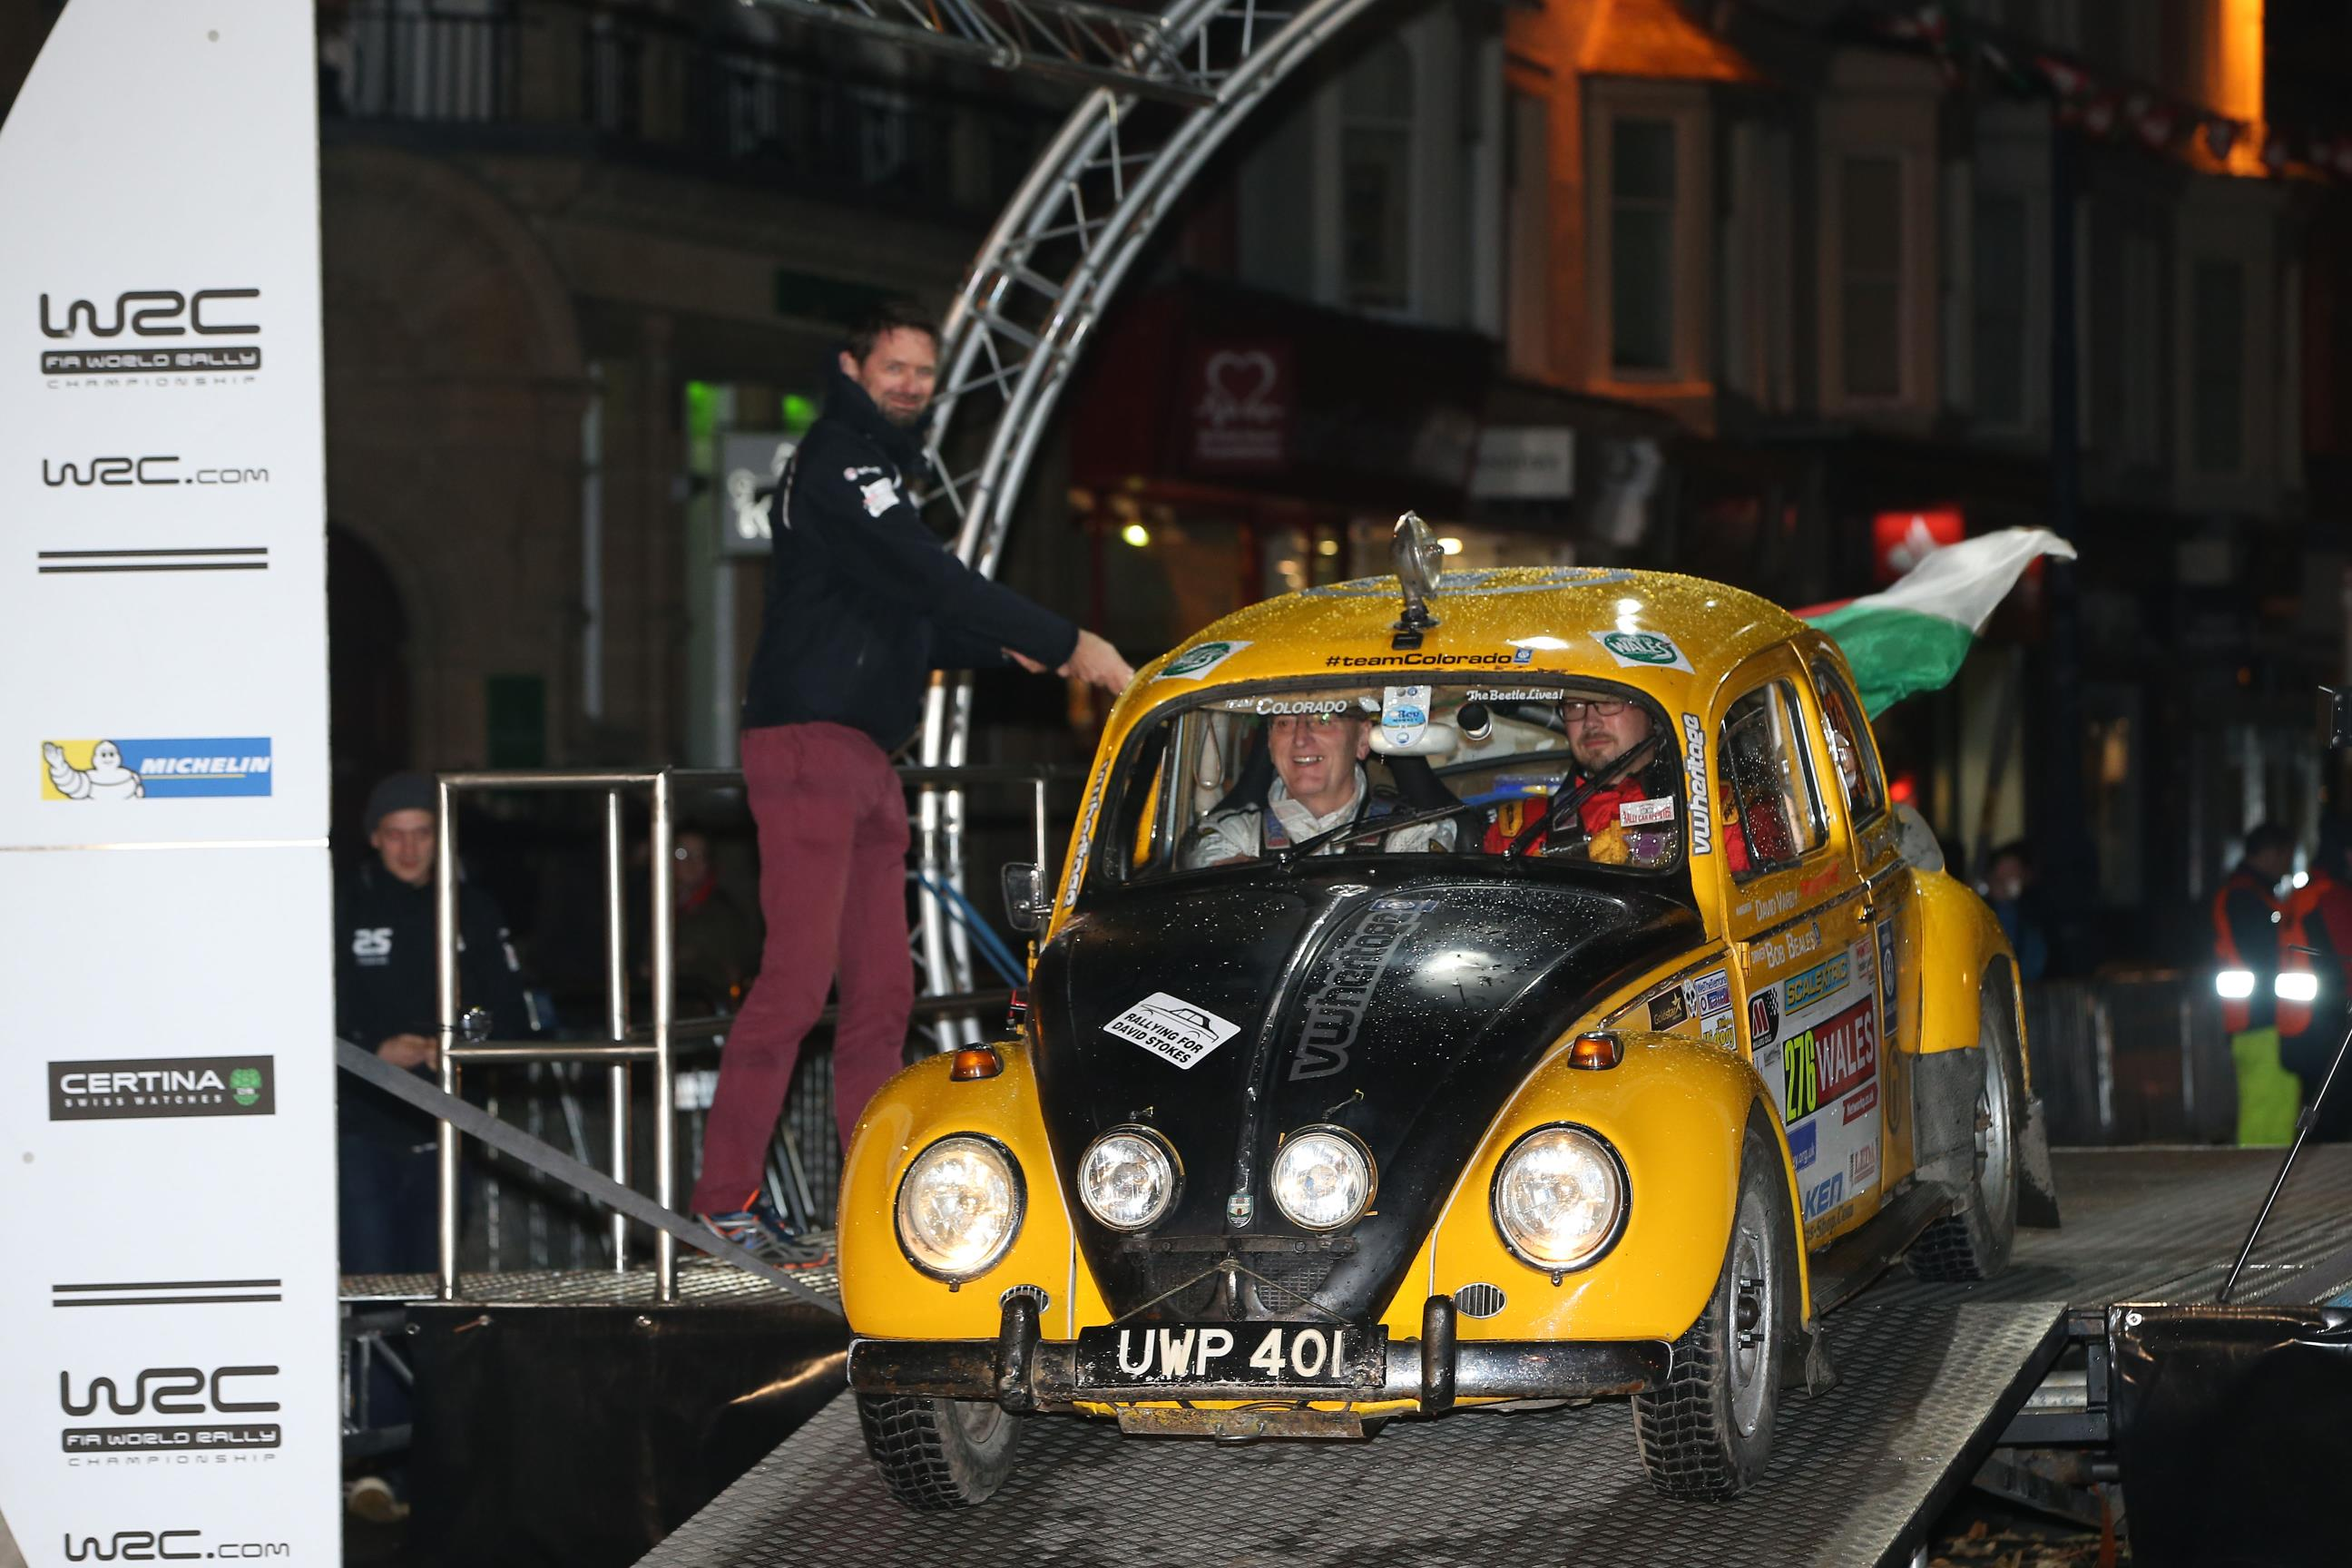 Bertie the Bettle contesting the 2015 WRGB National Rally 2